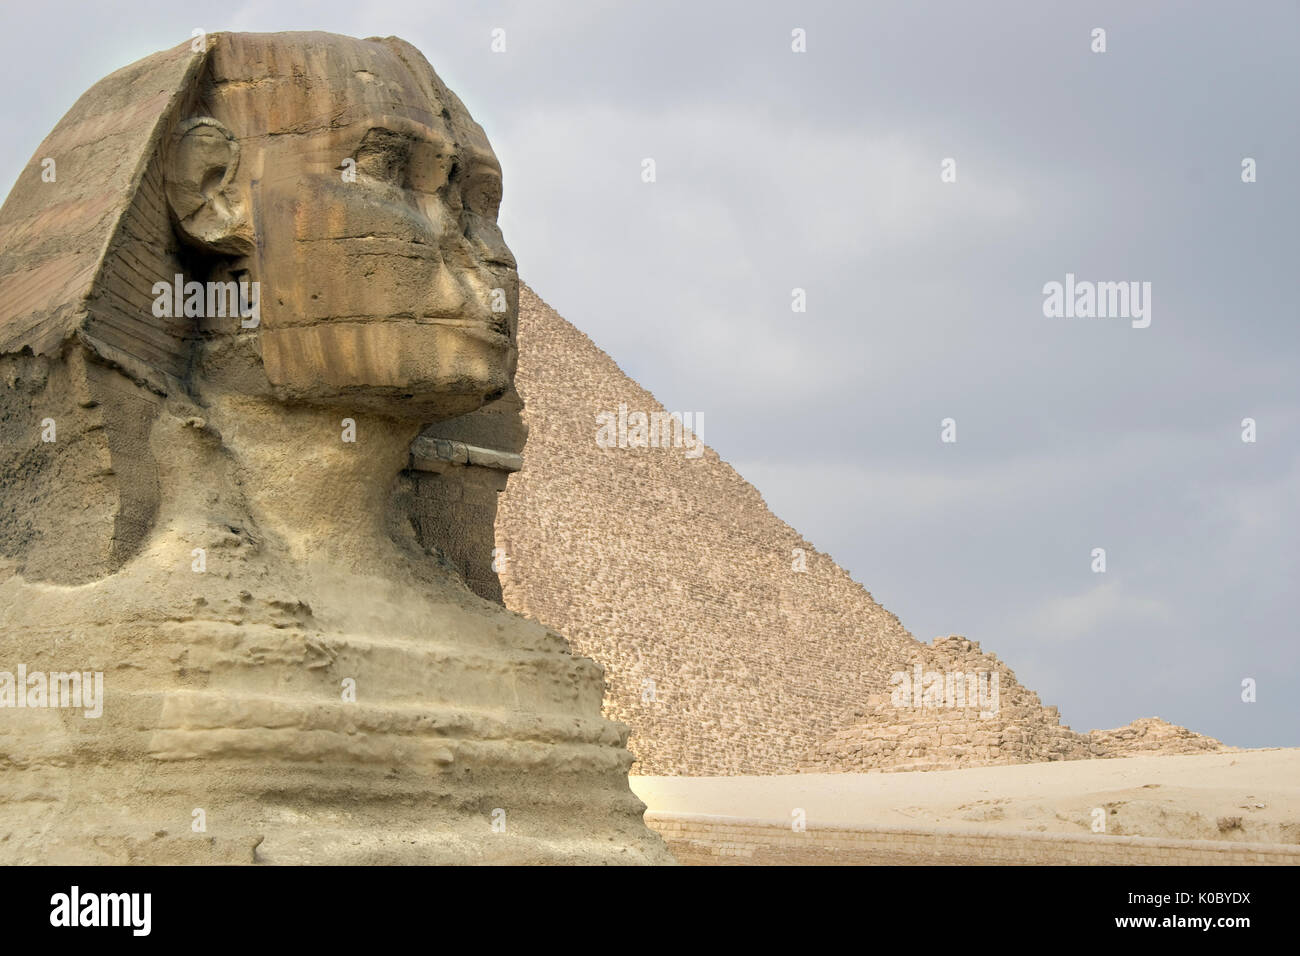 The Sphinx guarding the pyramids on the Giza plateu in Cairo, egypt. - Stock Image